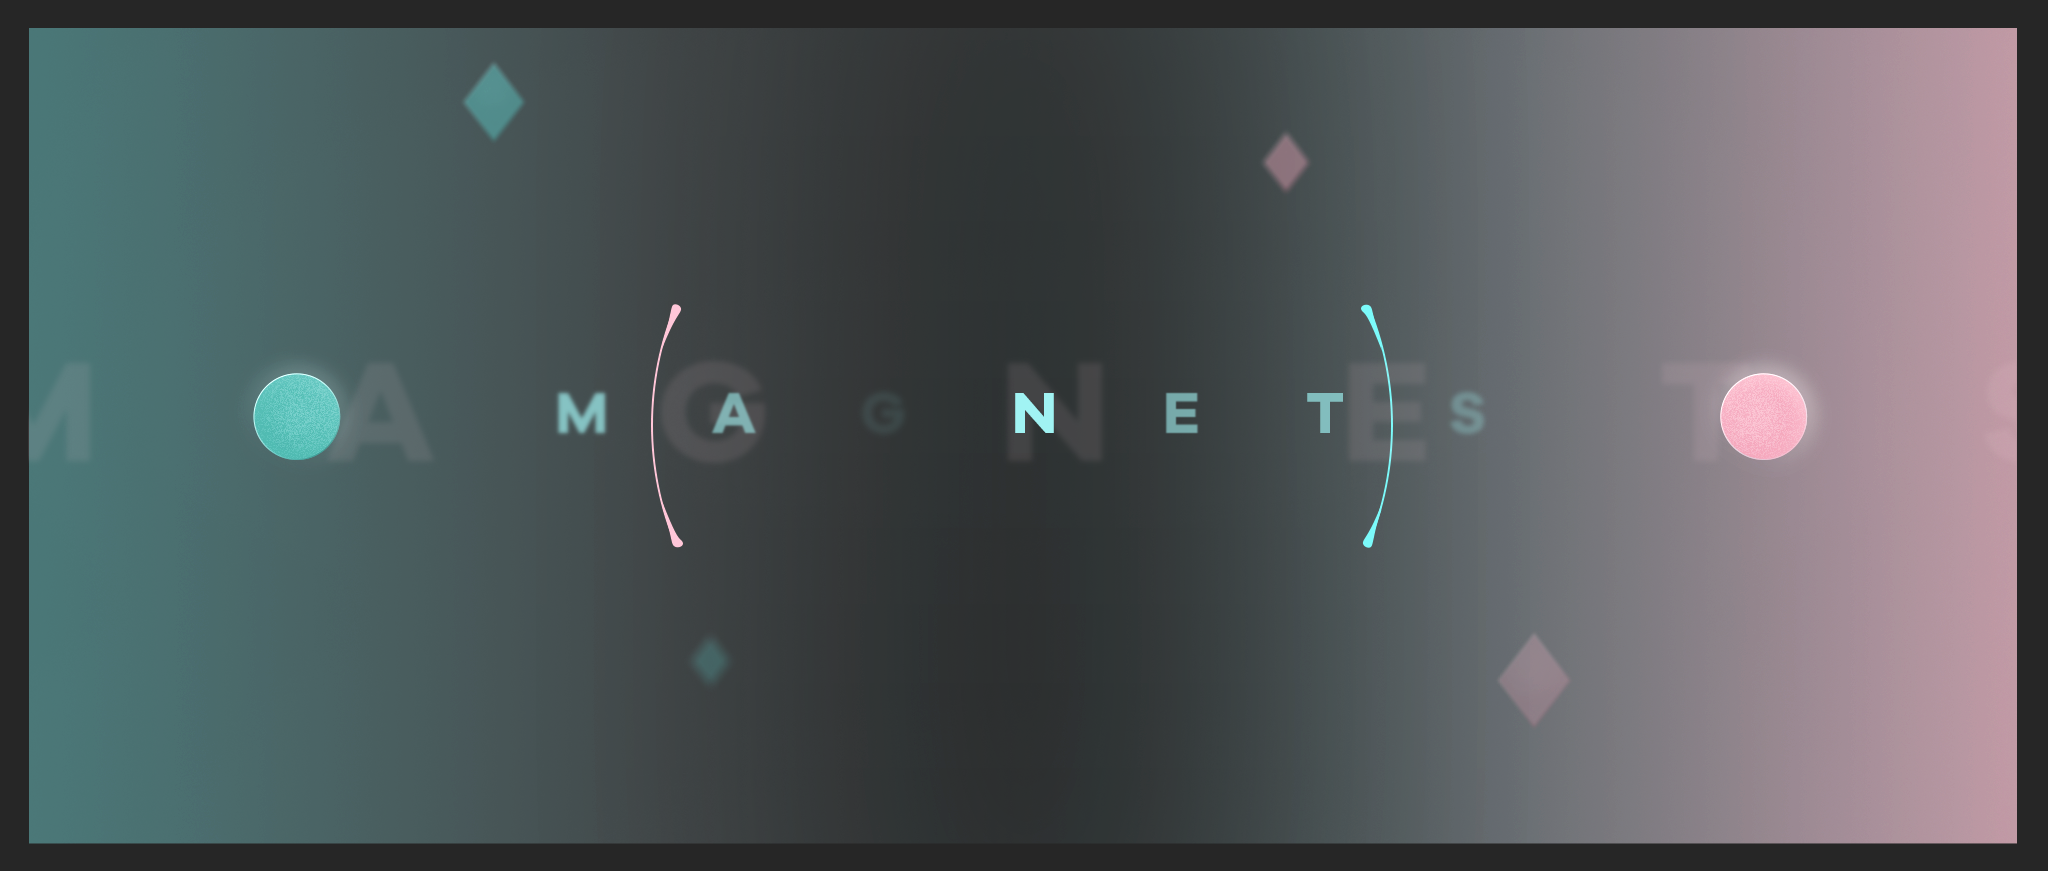 Magnets – Style Frame_05